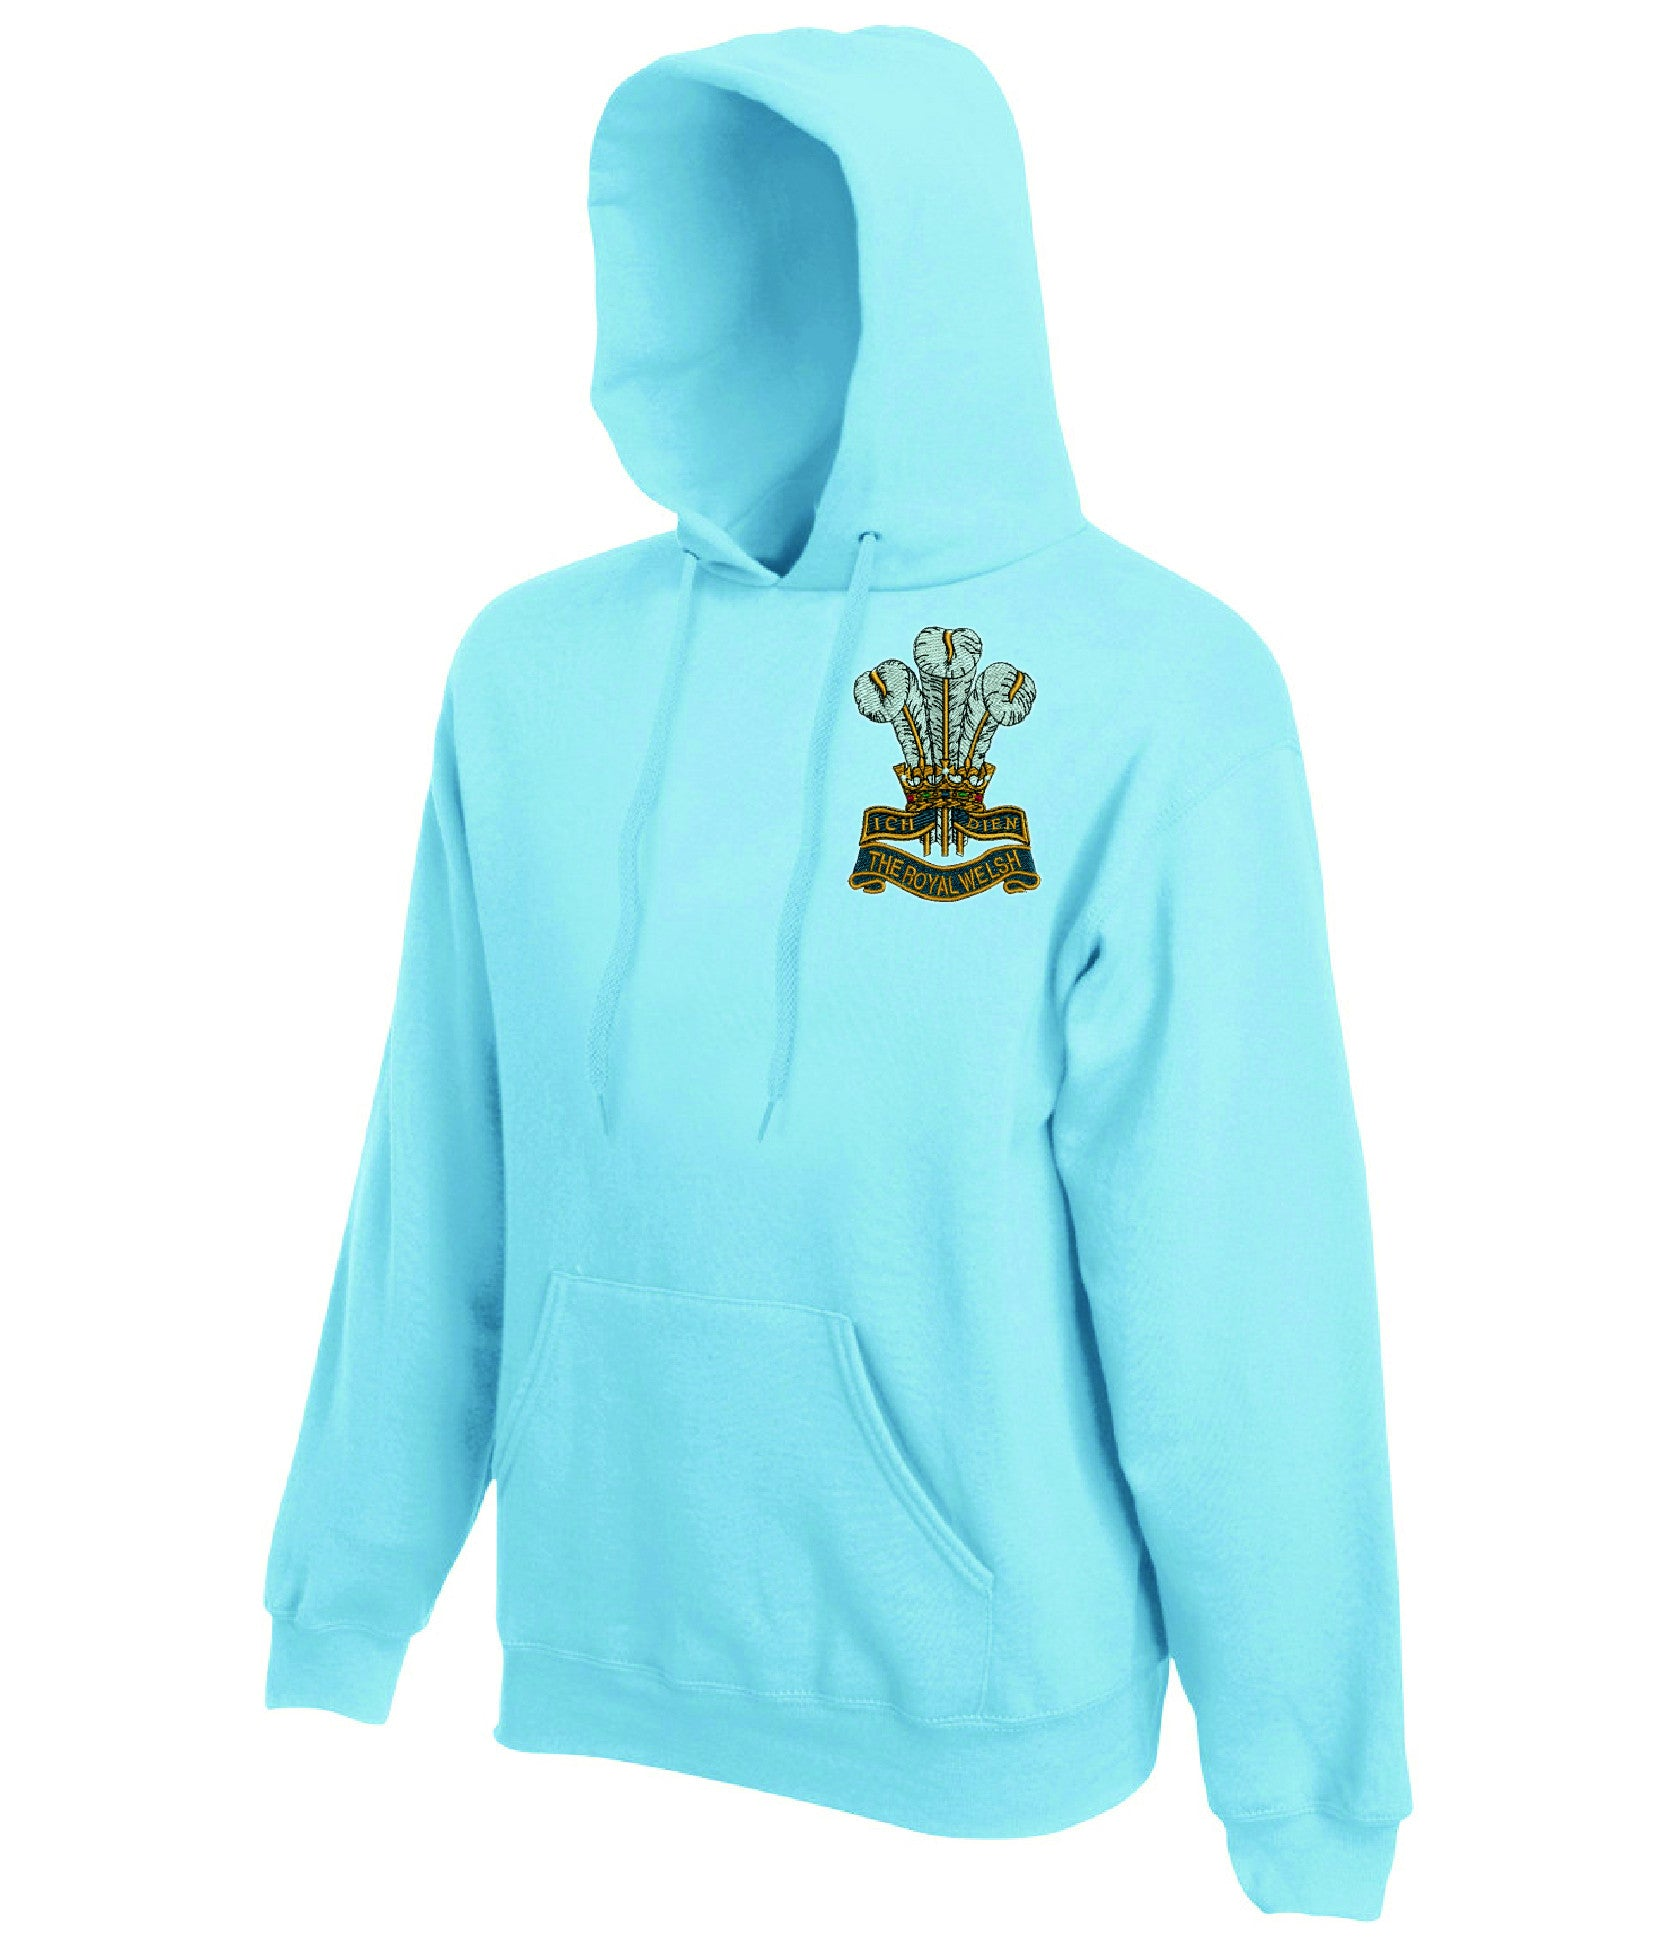 The Royal Welsh hoodie